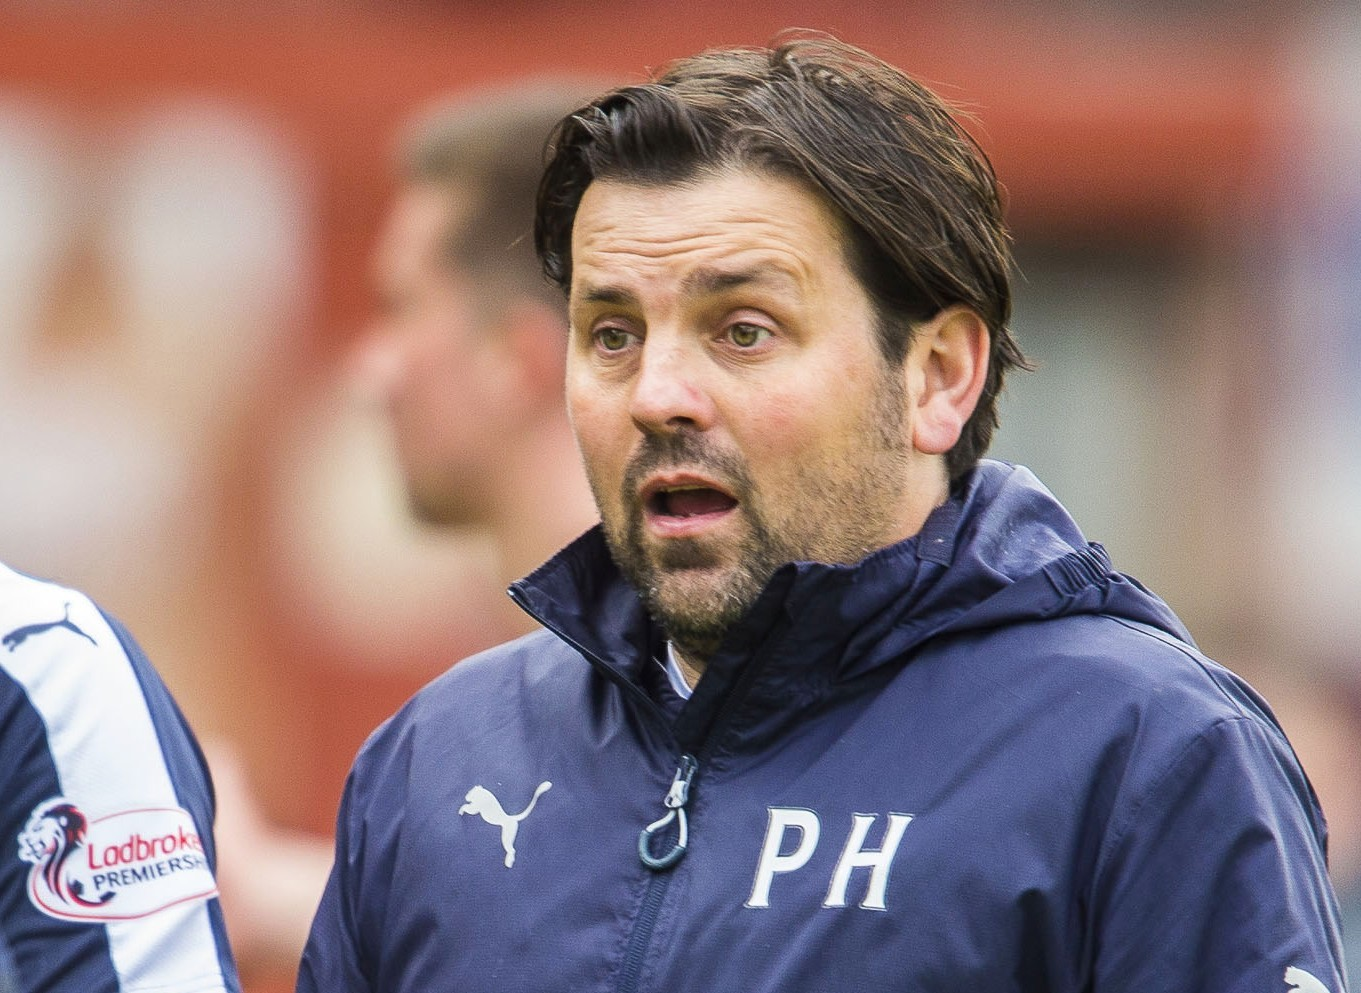 Paul Hartley says Dundee United's relegation would be a loss to the city.